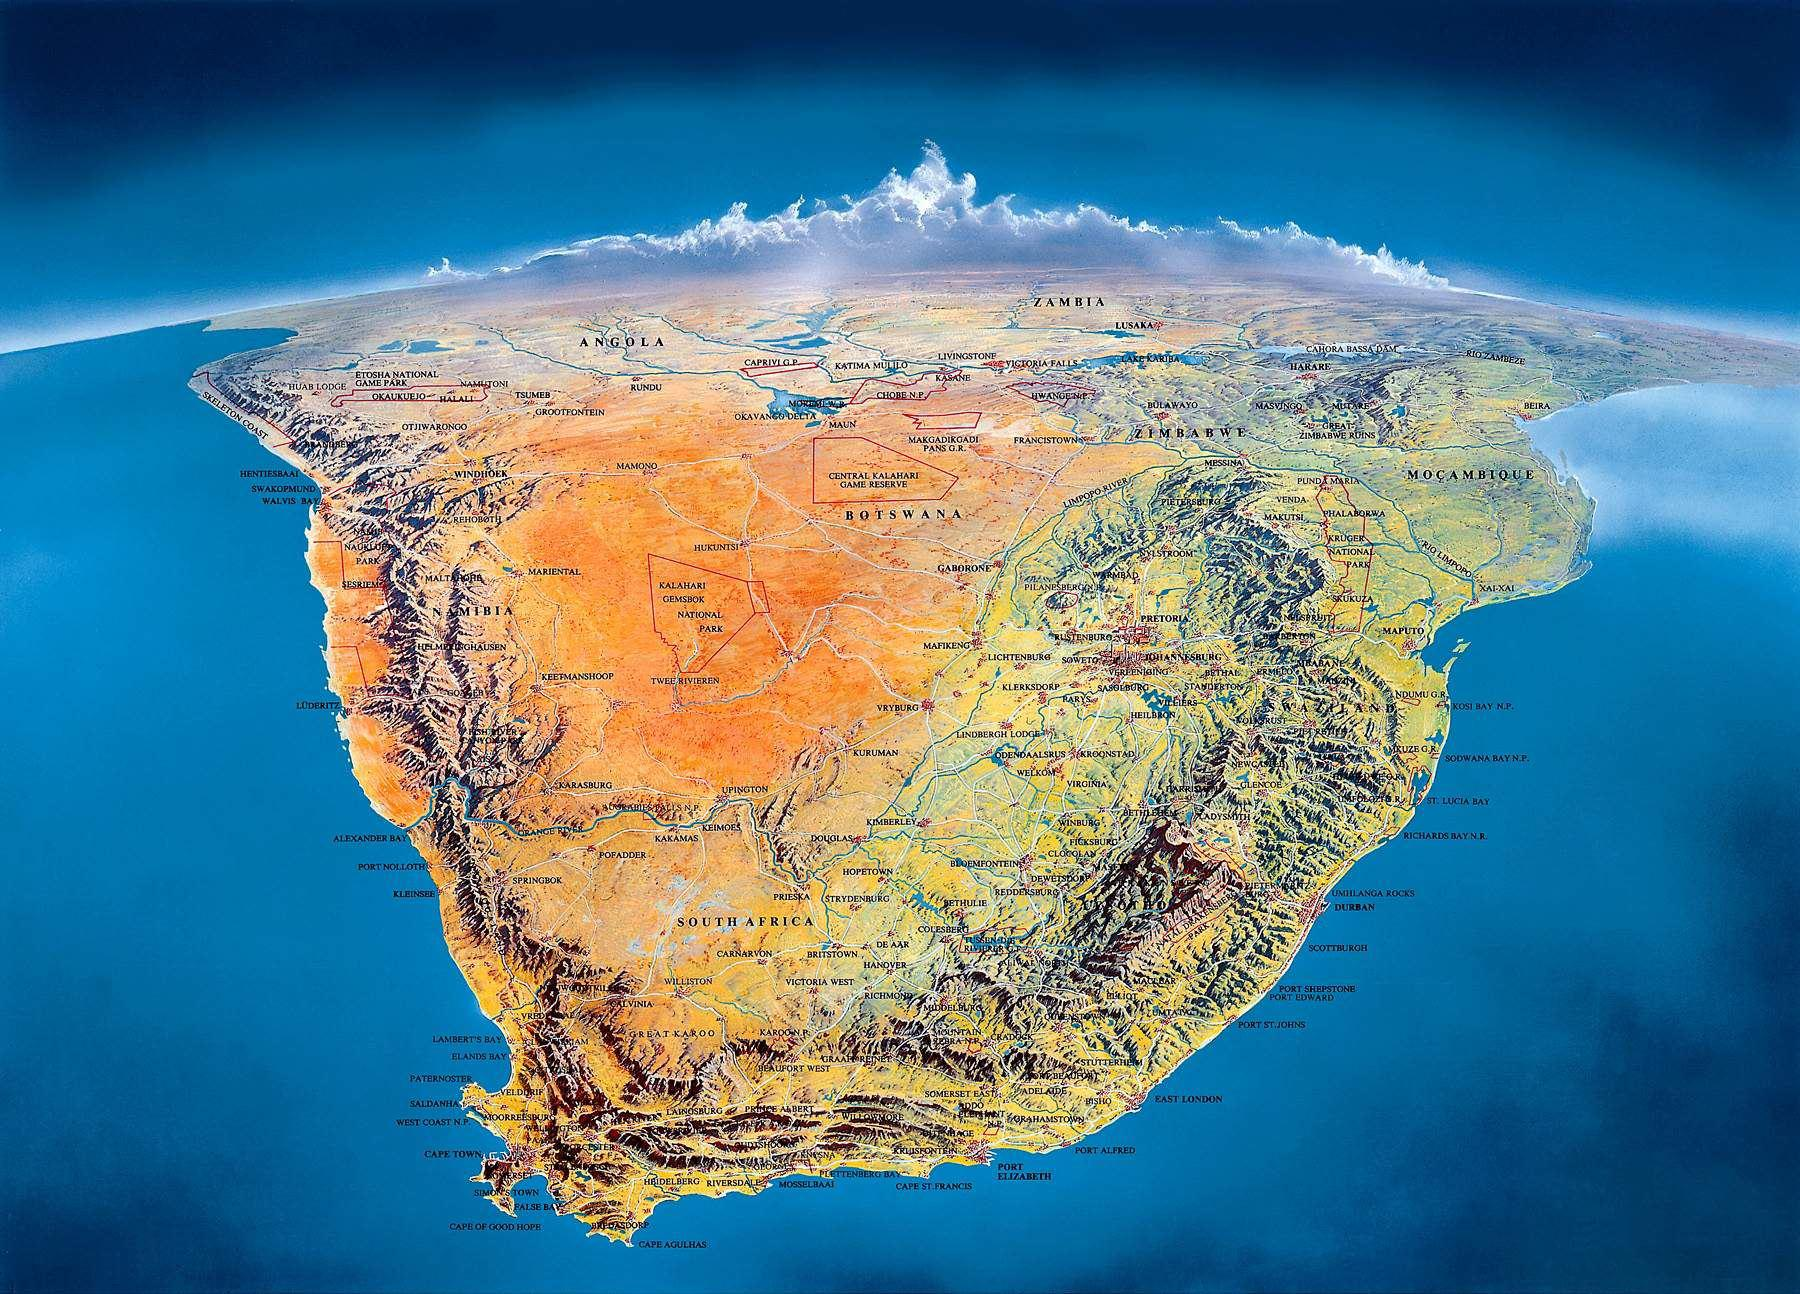 http://mondomix.com/blogs/media/image/carte-afrique-du-sud-big.jpg